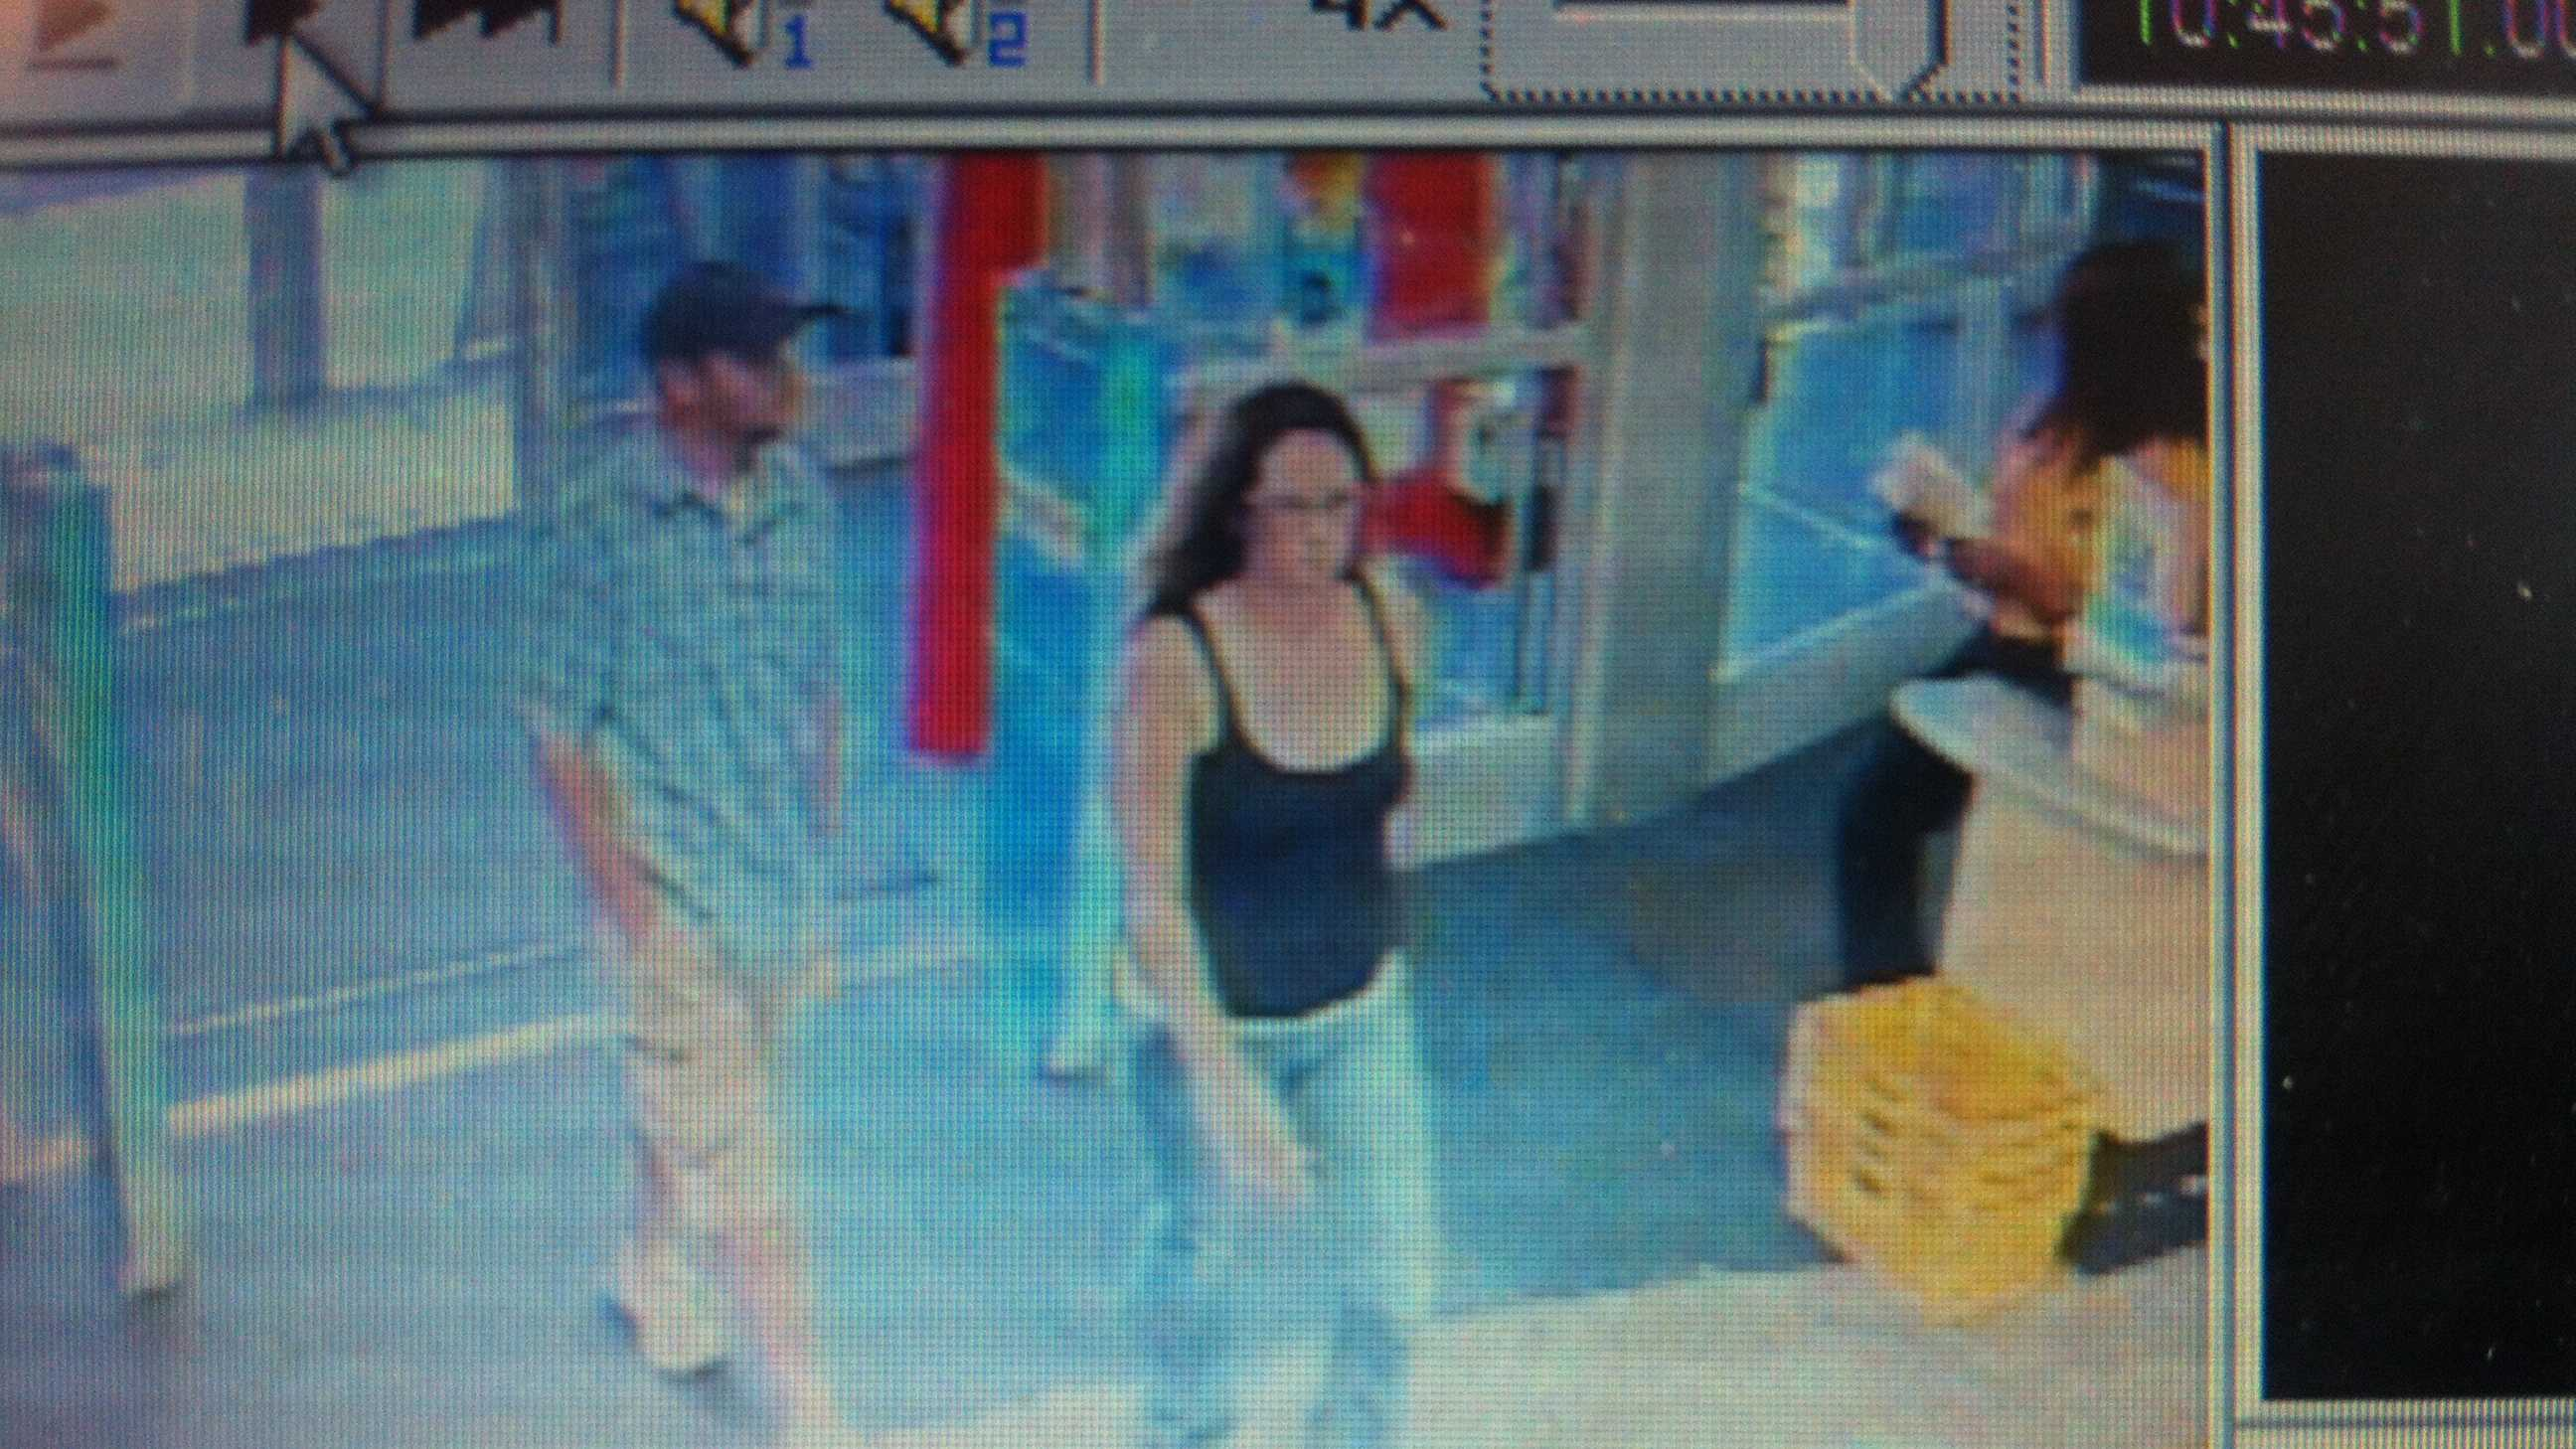 Police release photos of pair in Inhofe robbery